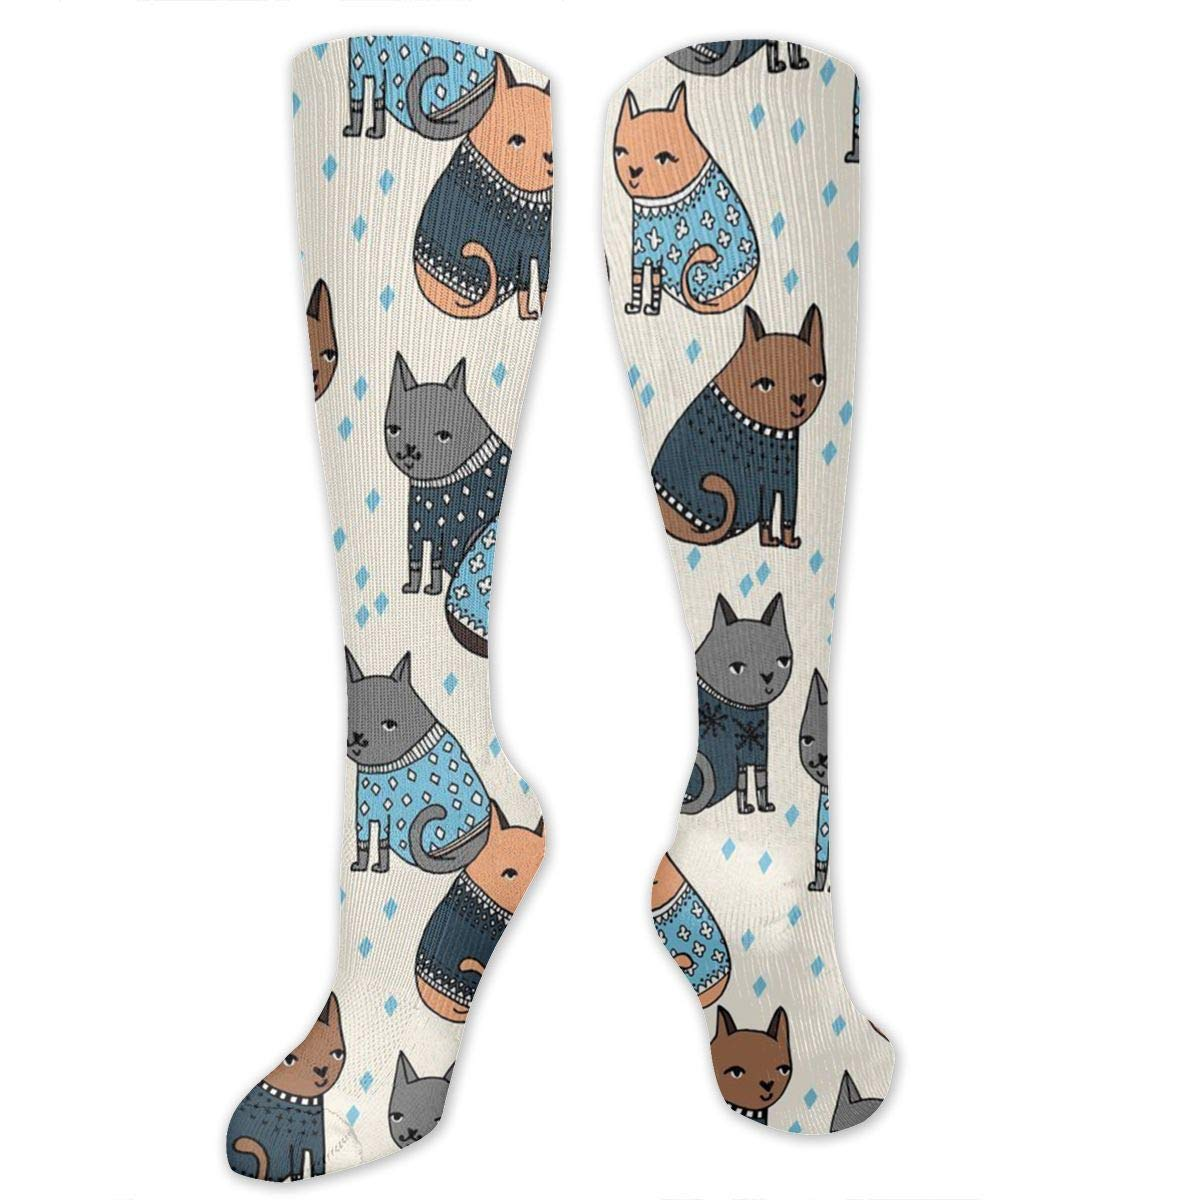 Varicose Veins Travel Athletic Ygsdf59 Ugly Cat Christmas Compression Socks for Women and Men Best Medical,for Running